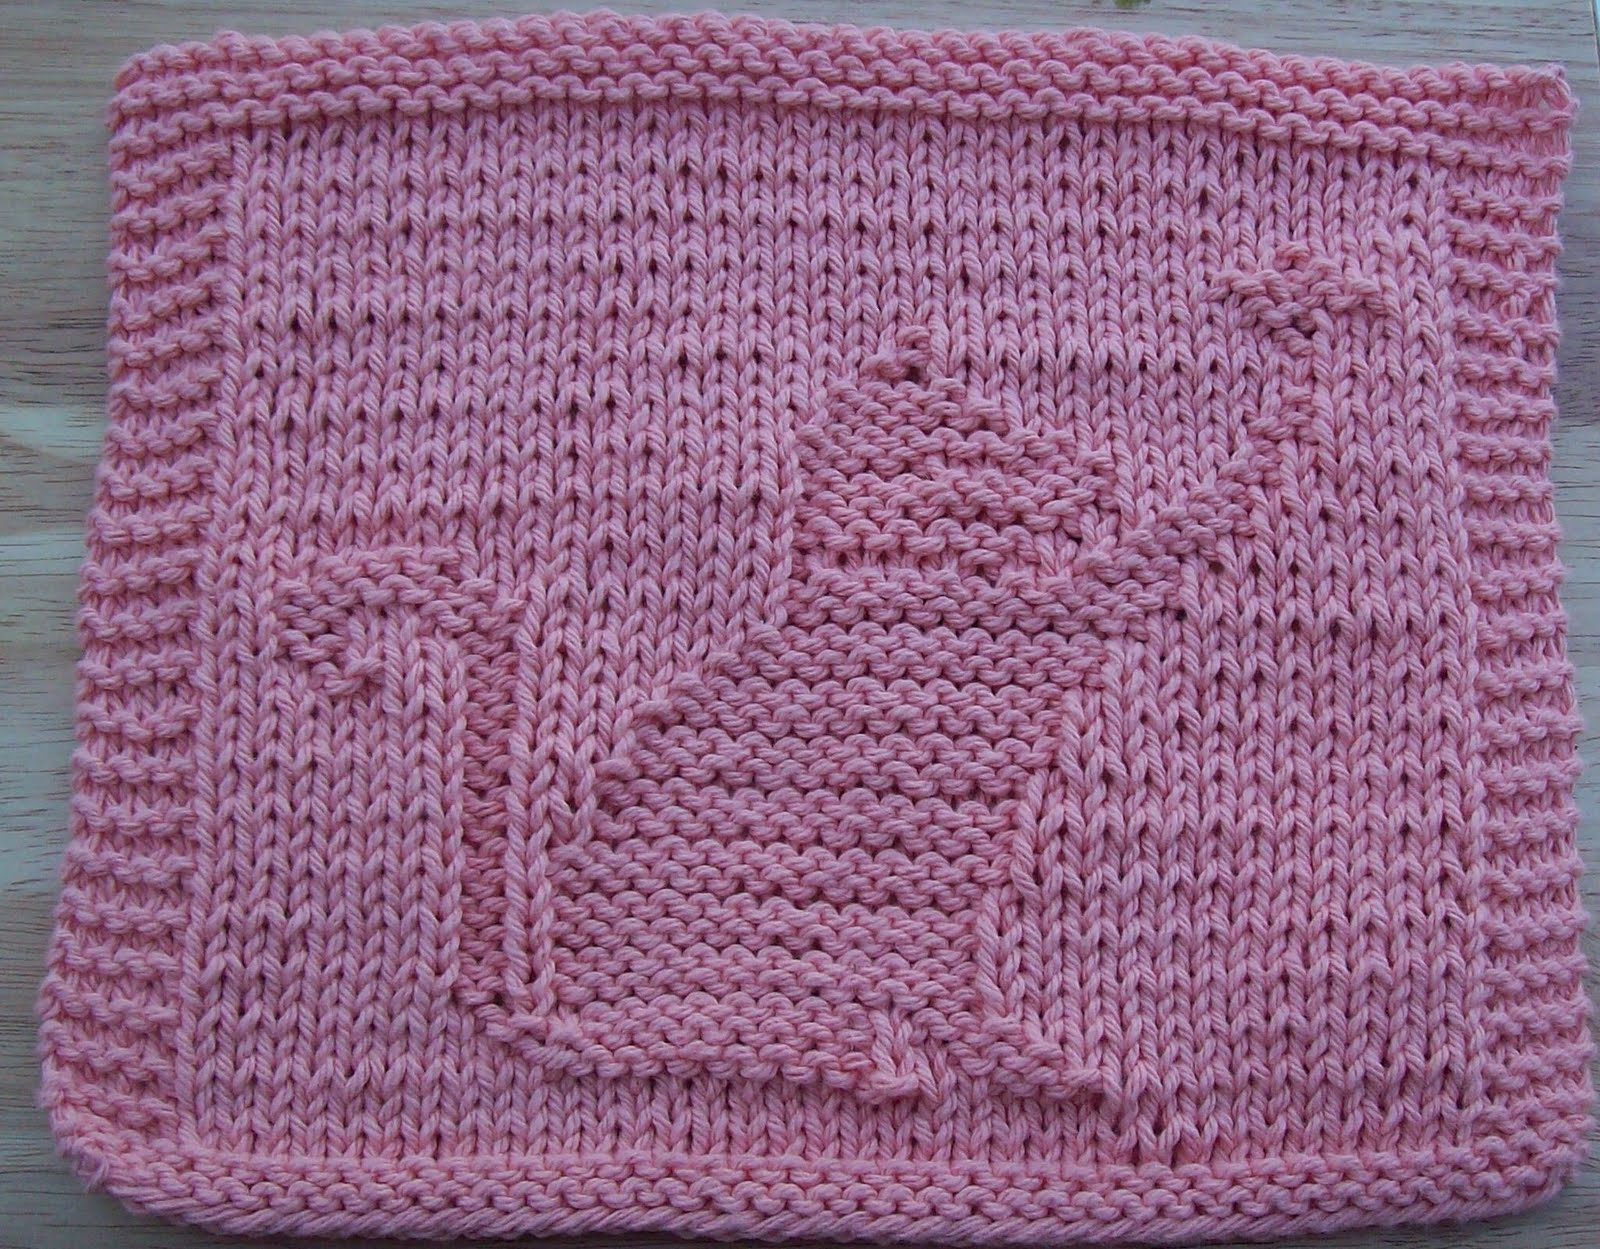 Knitted Butterfly Dishcloth Pattern Digknitty Designs Cat With Butterfly Knit Dishcloth Pattern